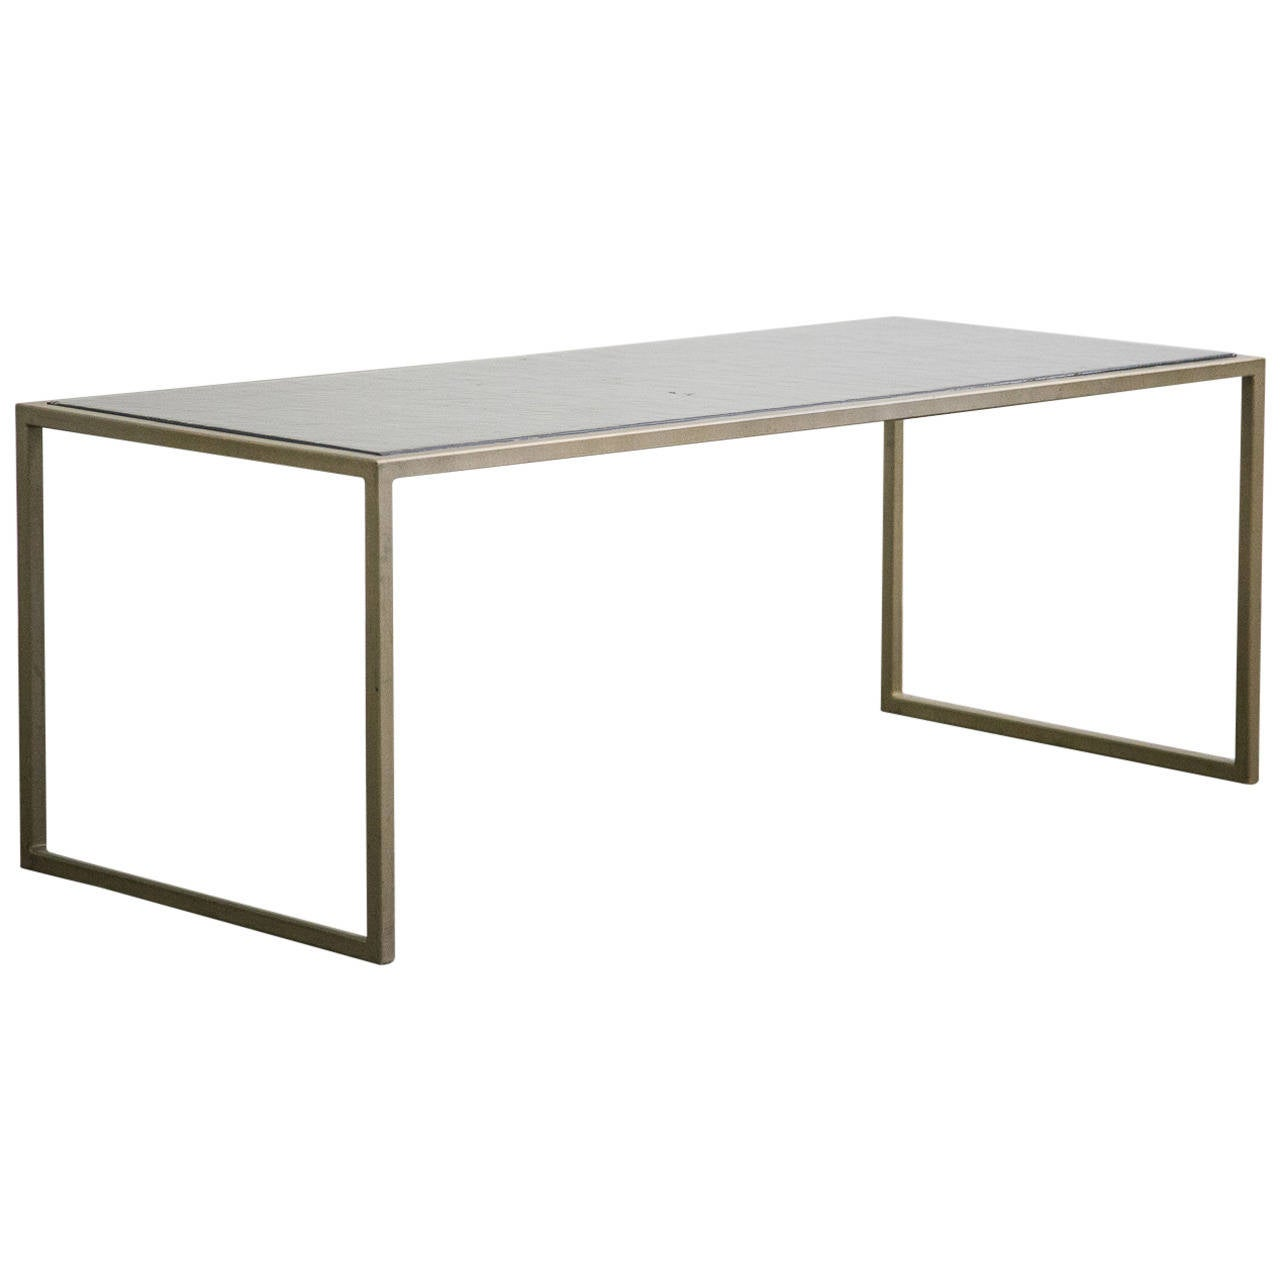 Philippe starck designed coffee table paris circa 1985 for sale at 1stdibs for Philippe starck tables